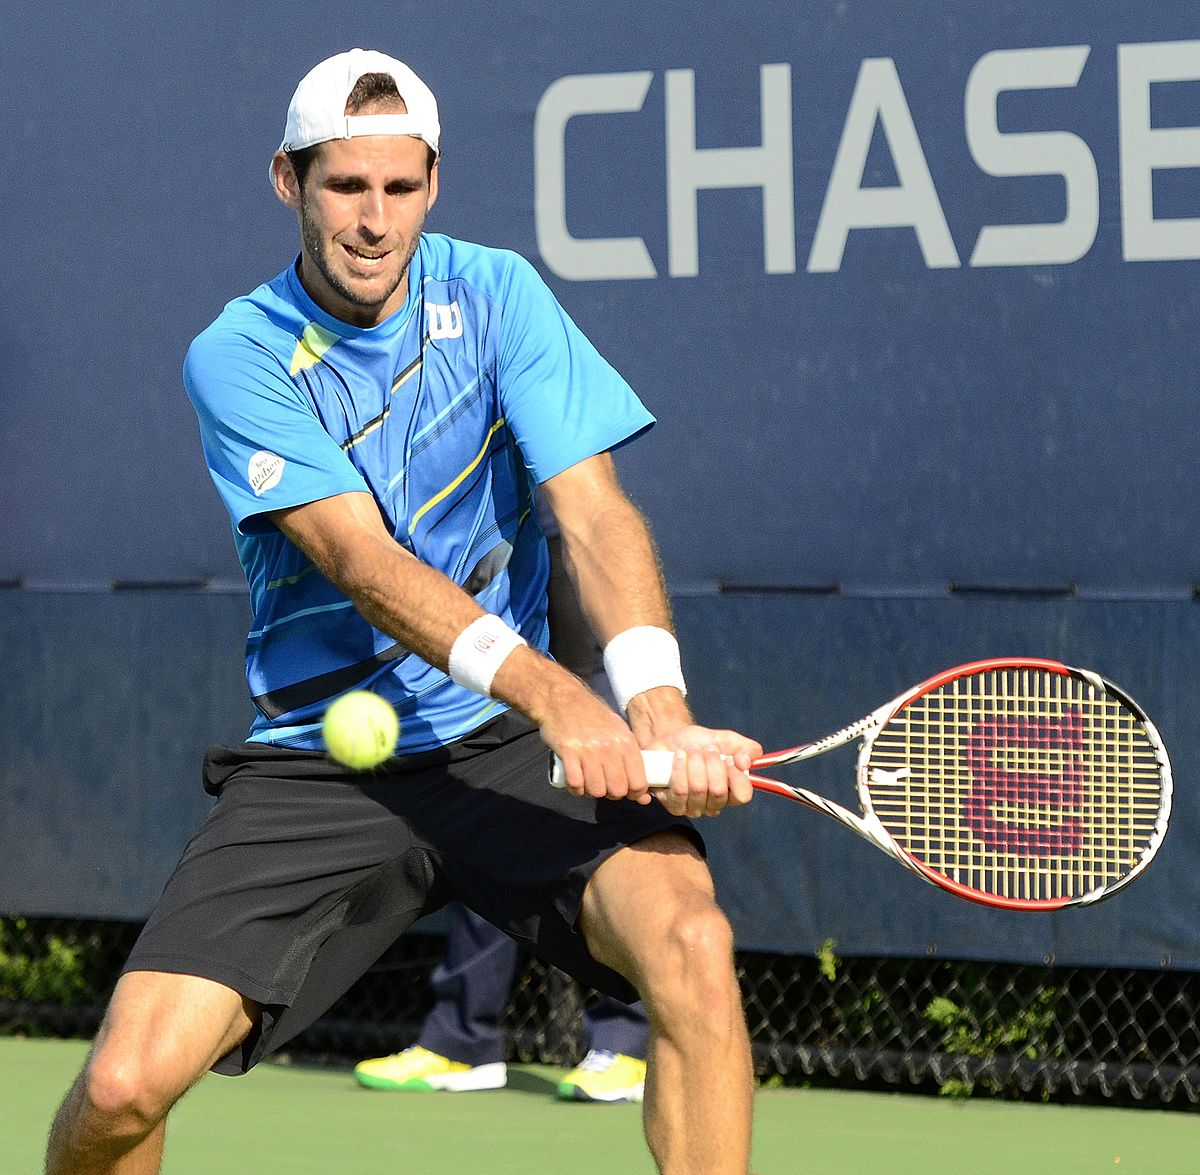 Us Open Qualifying For Champions Tour